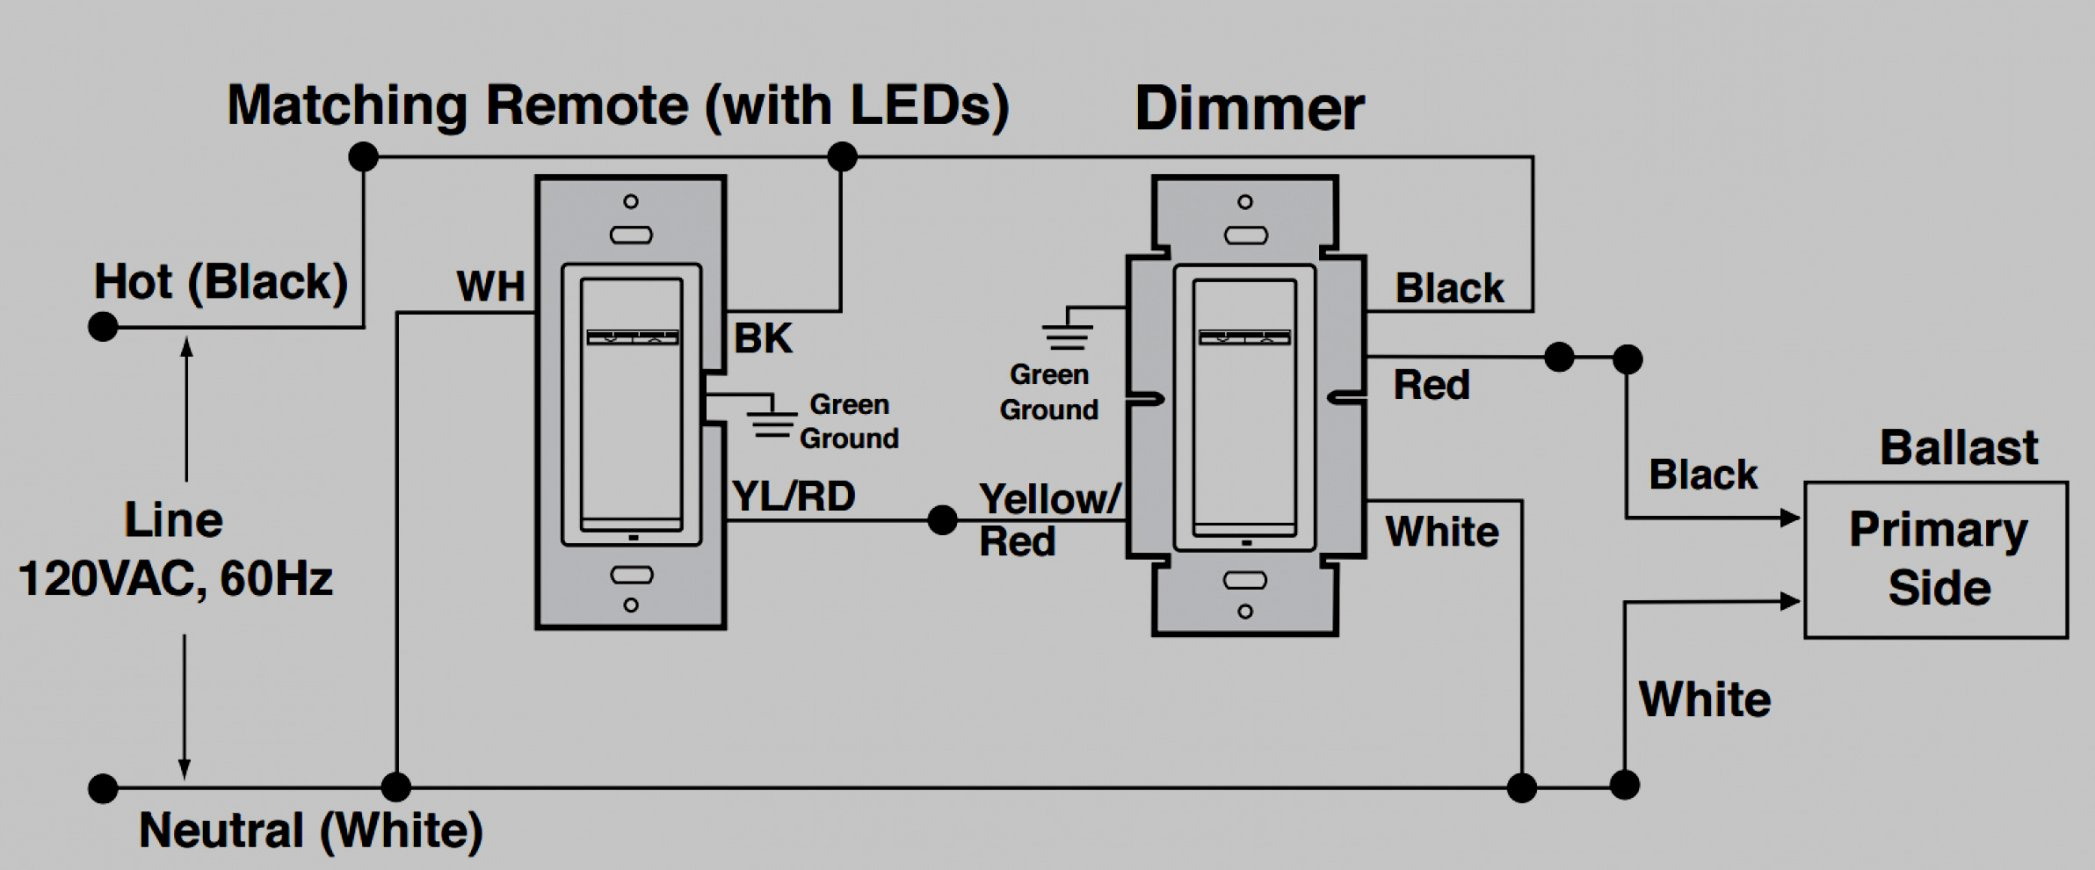 S2L Lutron Dimmer Switch Wiring Diagram | Wiring Diagram - Lutron 3 Way Dimmer Wiring Diagram